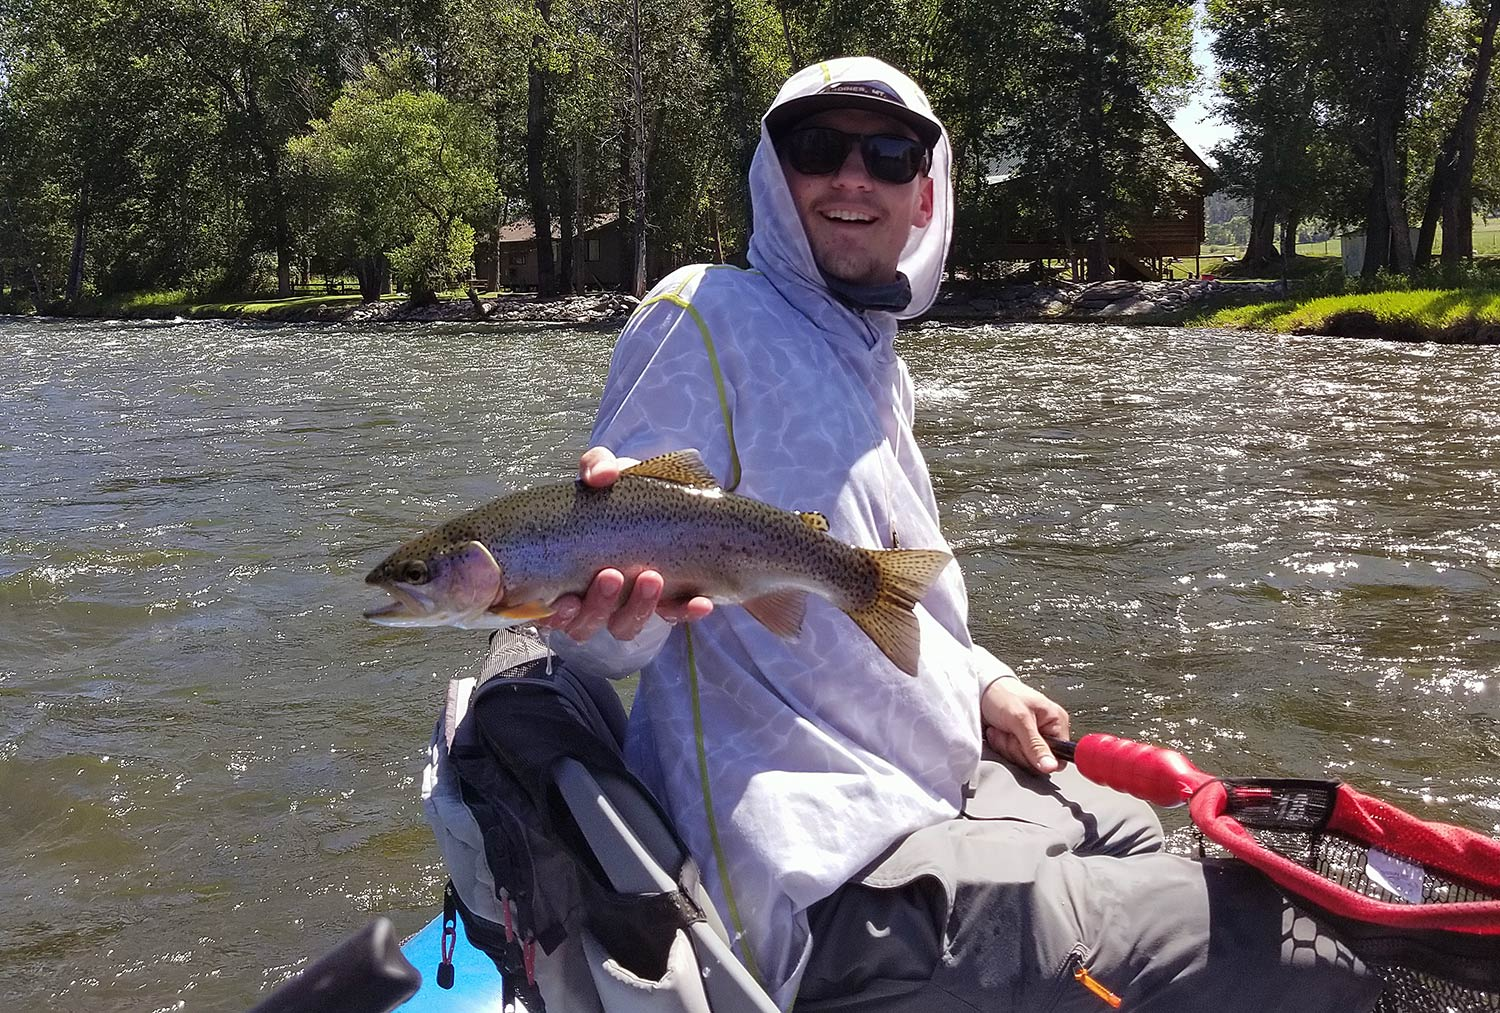 Angler with Stillwater River rainbow trout